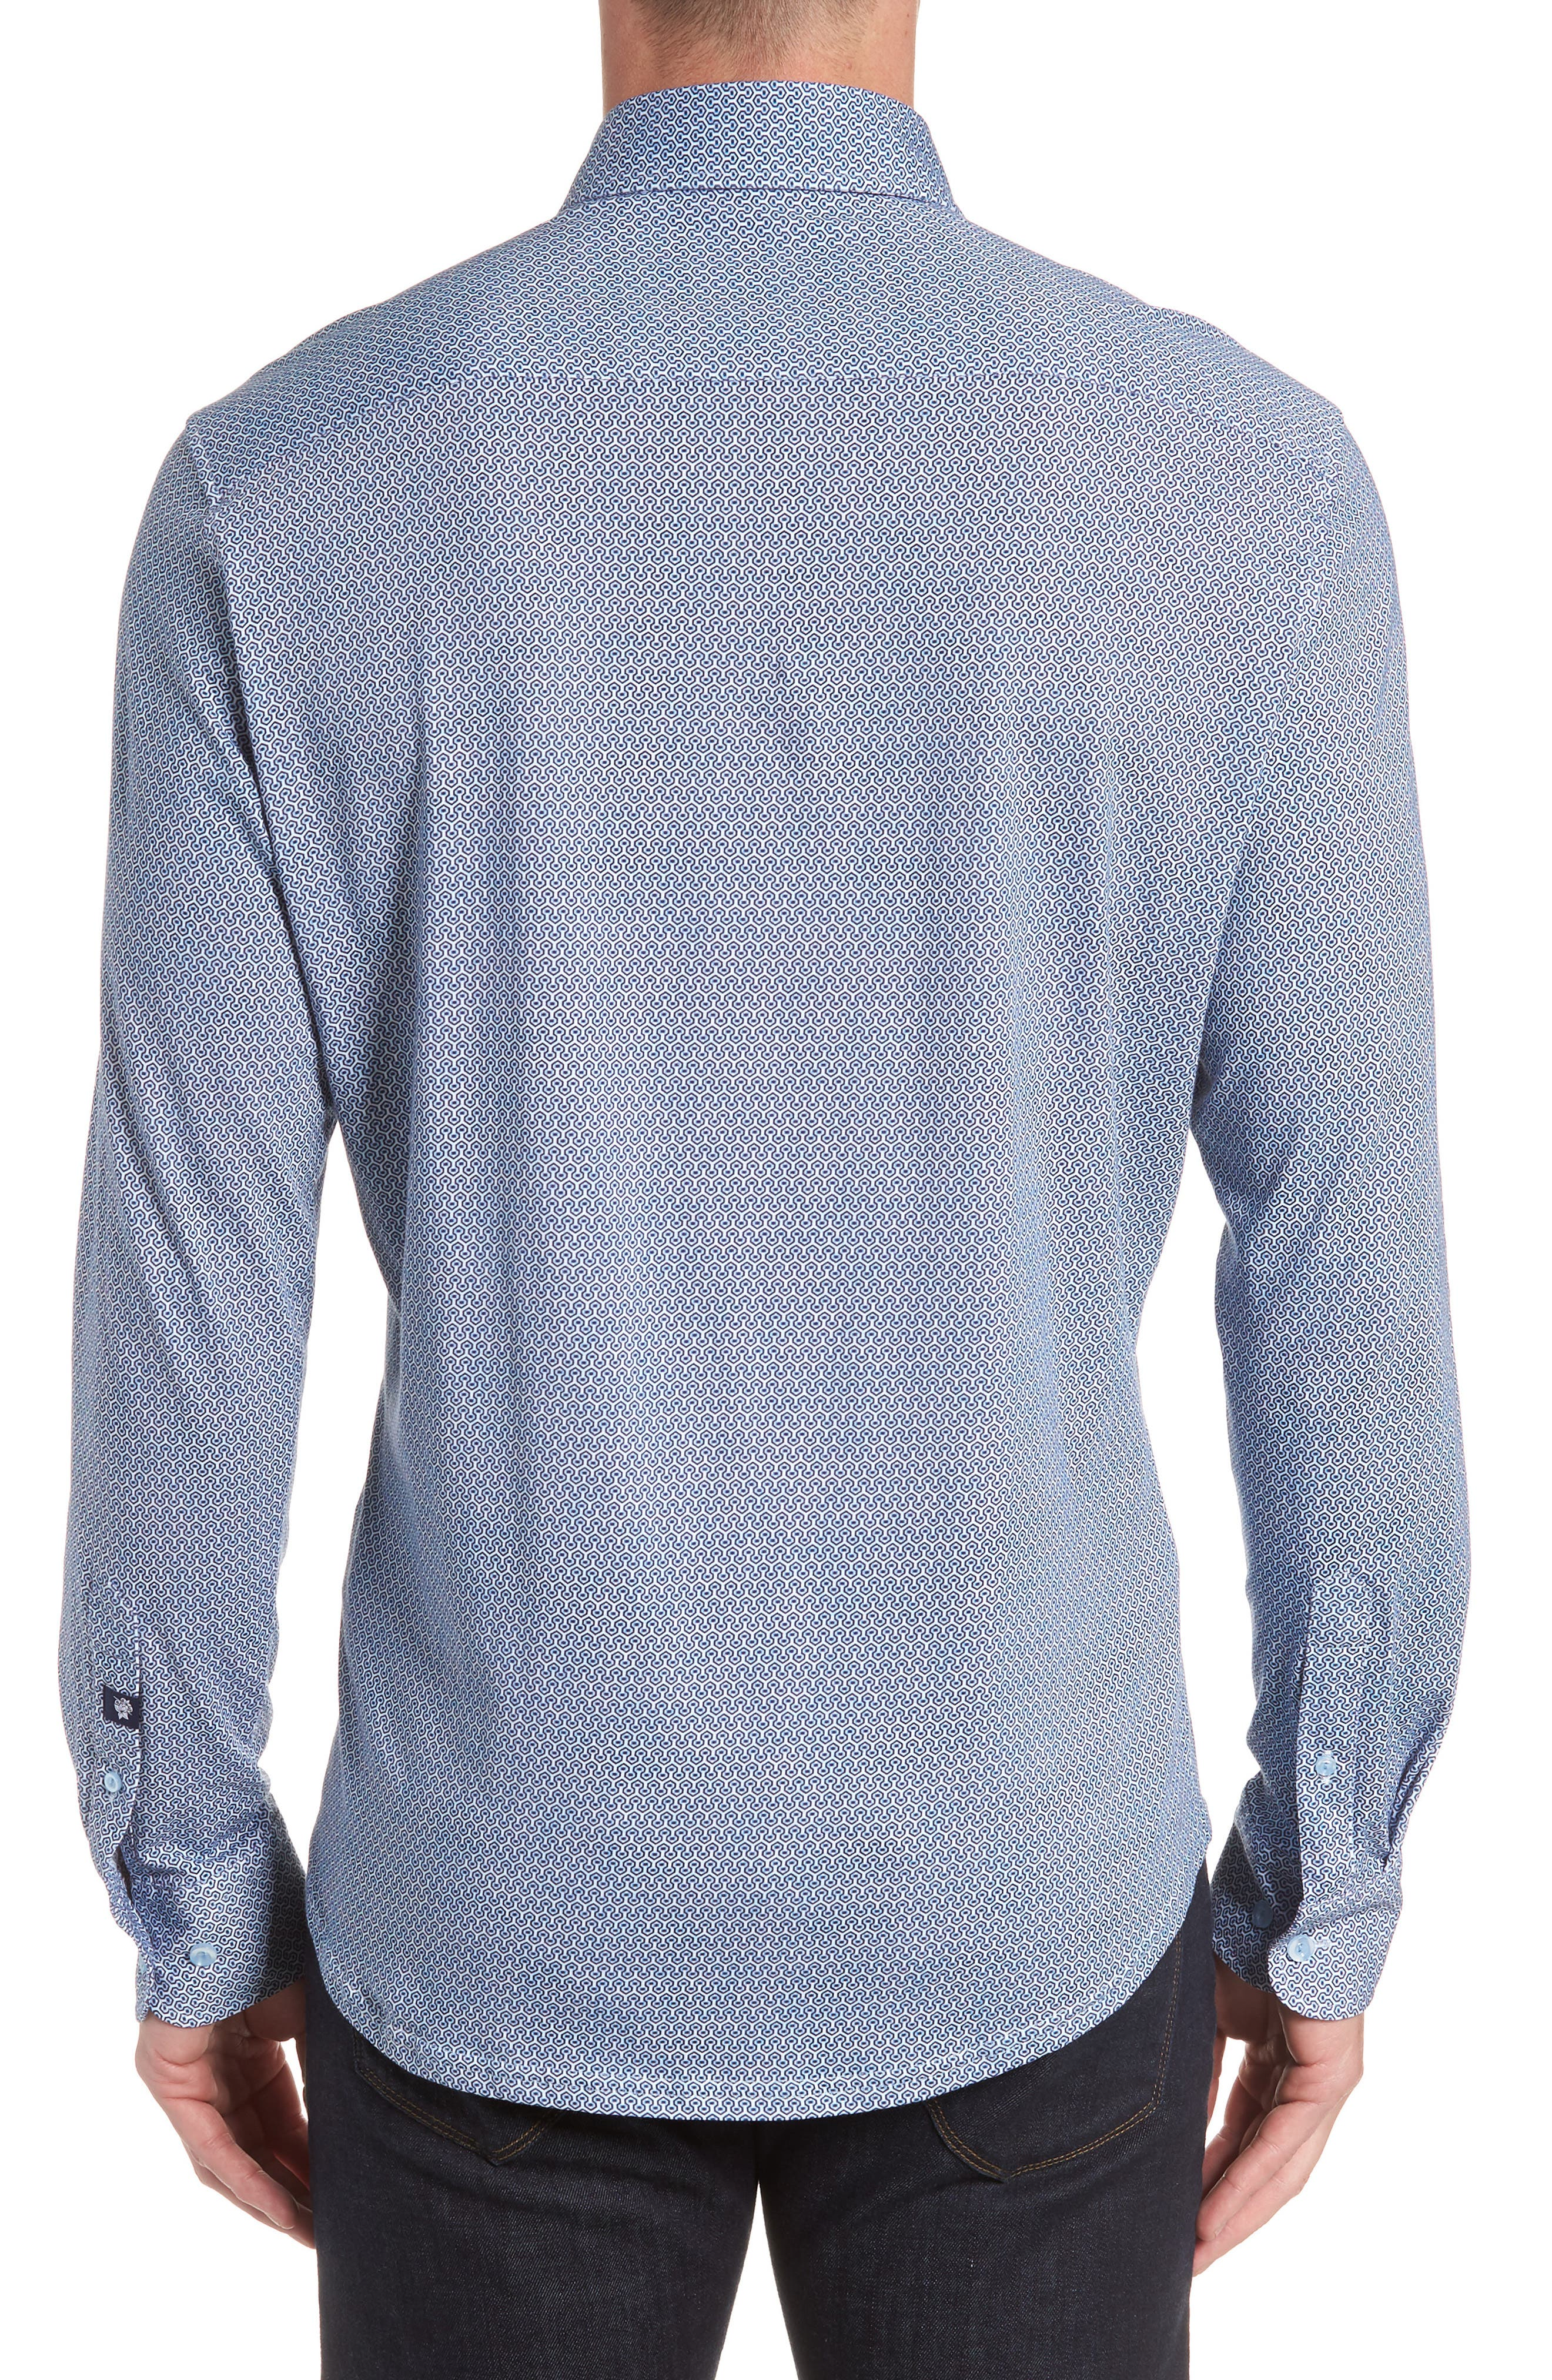 Honeycomb Print Knit Sport Shirt,                             Alternate thumbnail 4, color,